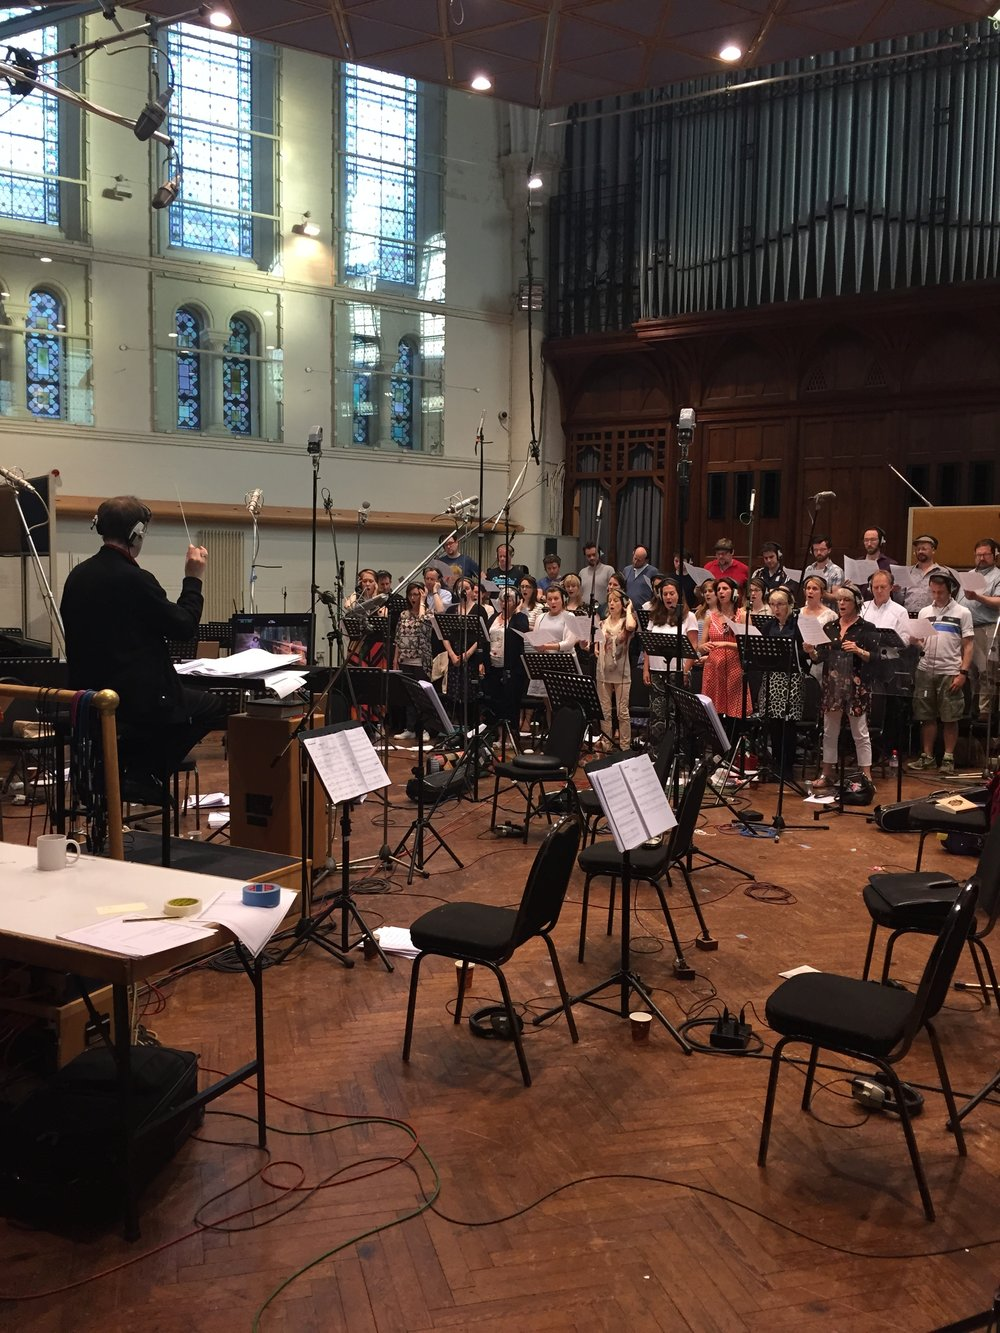 Kaska Conducting a Choir at Air Studios